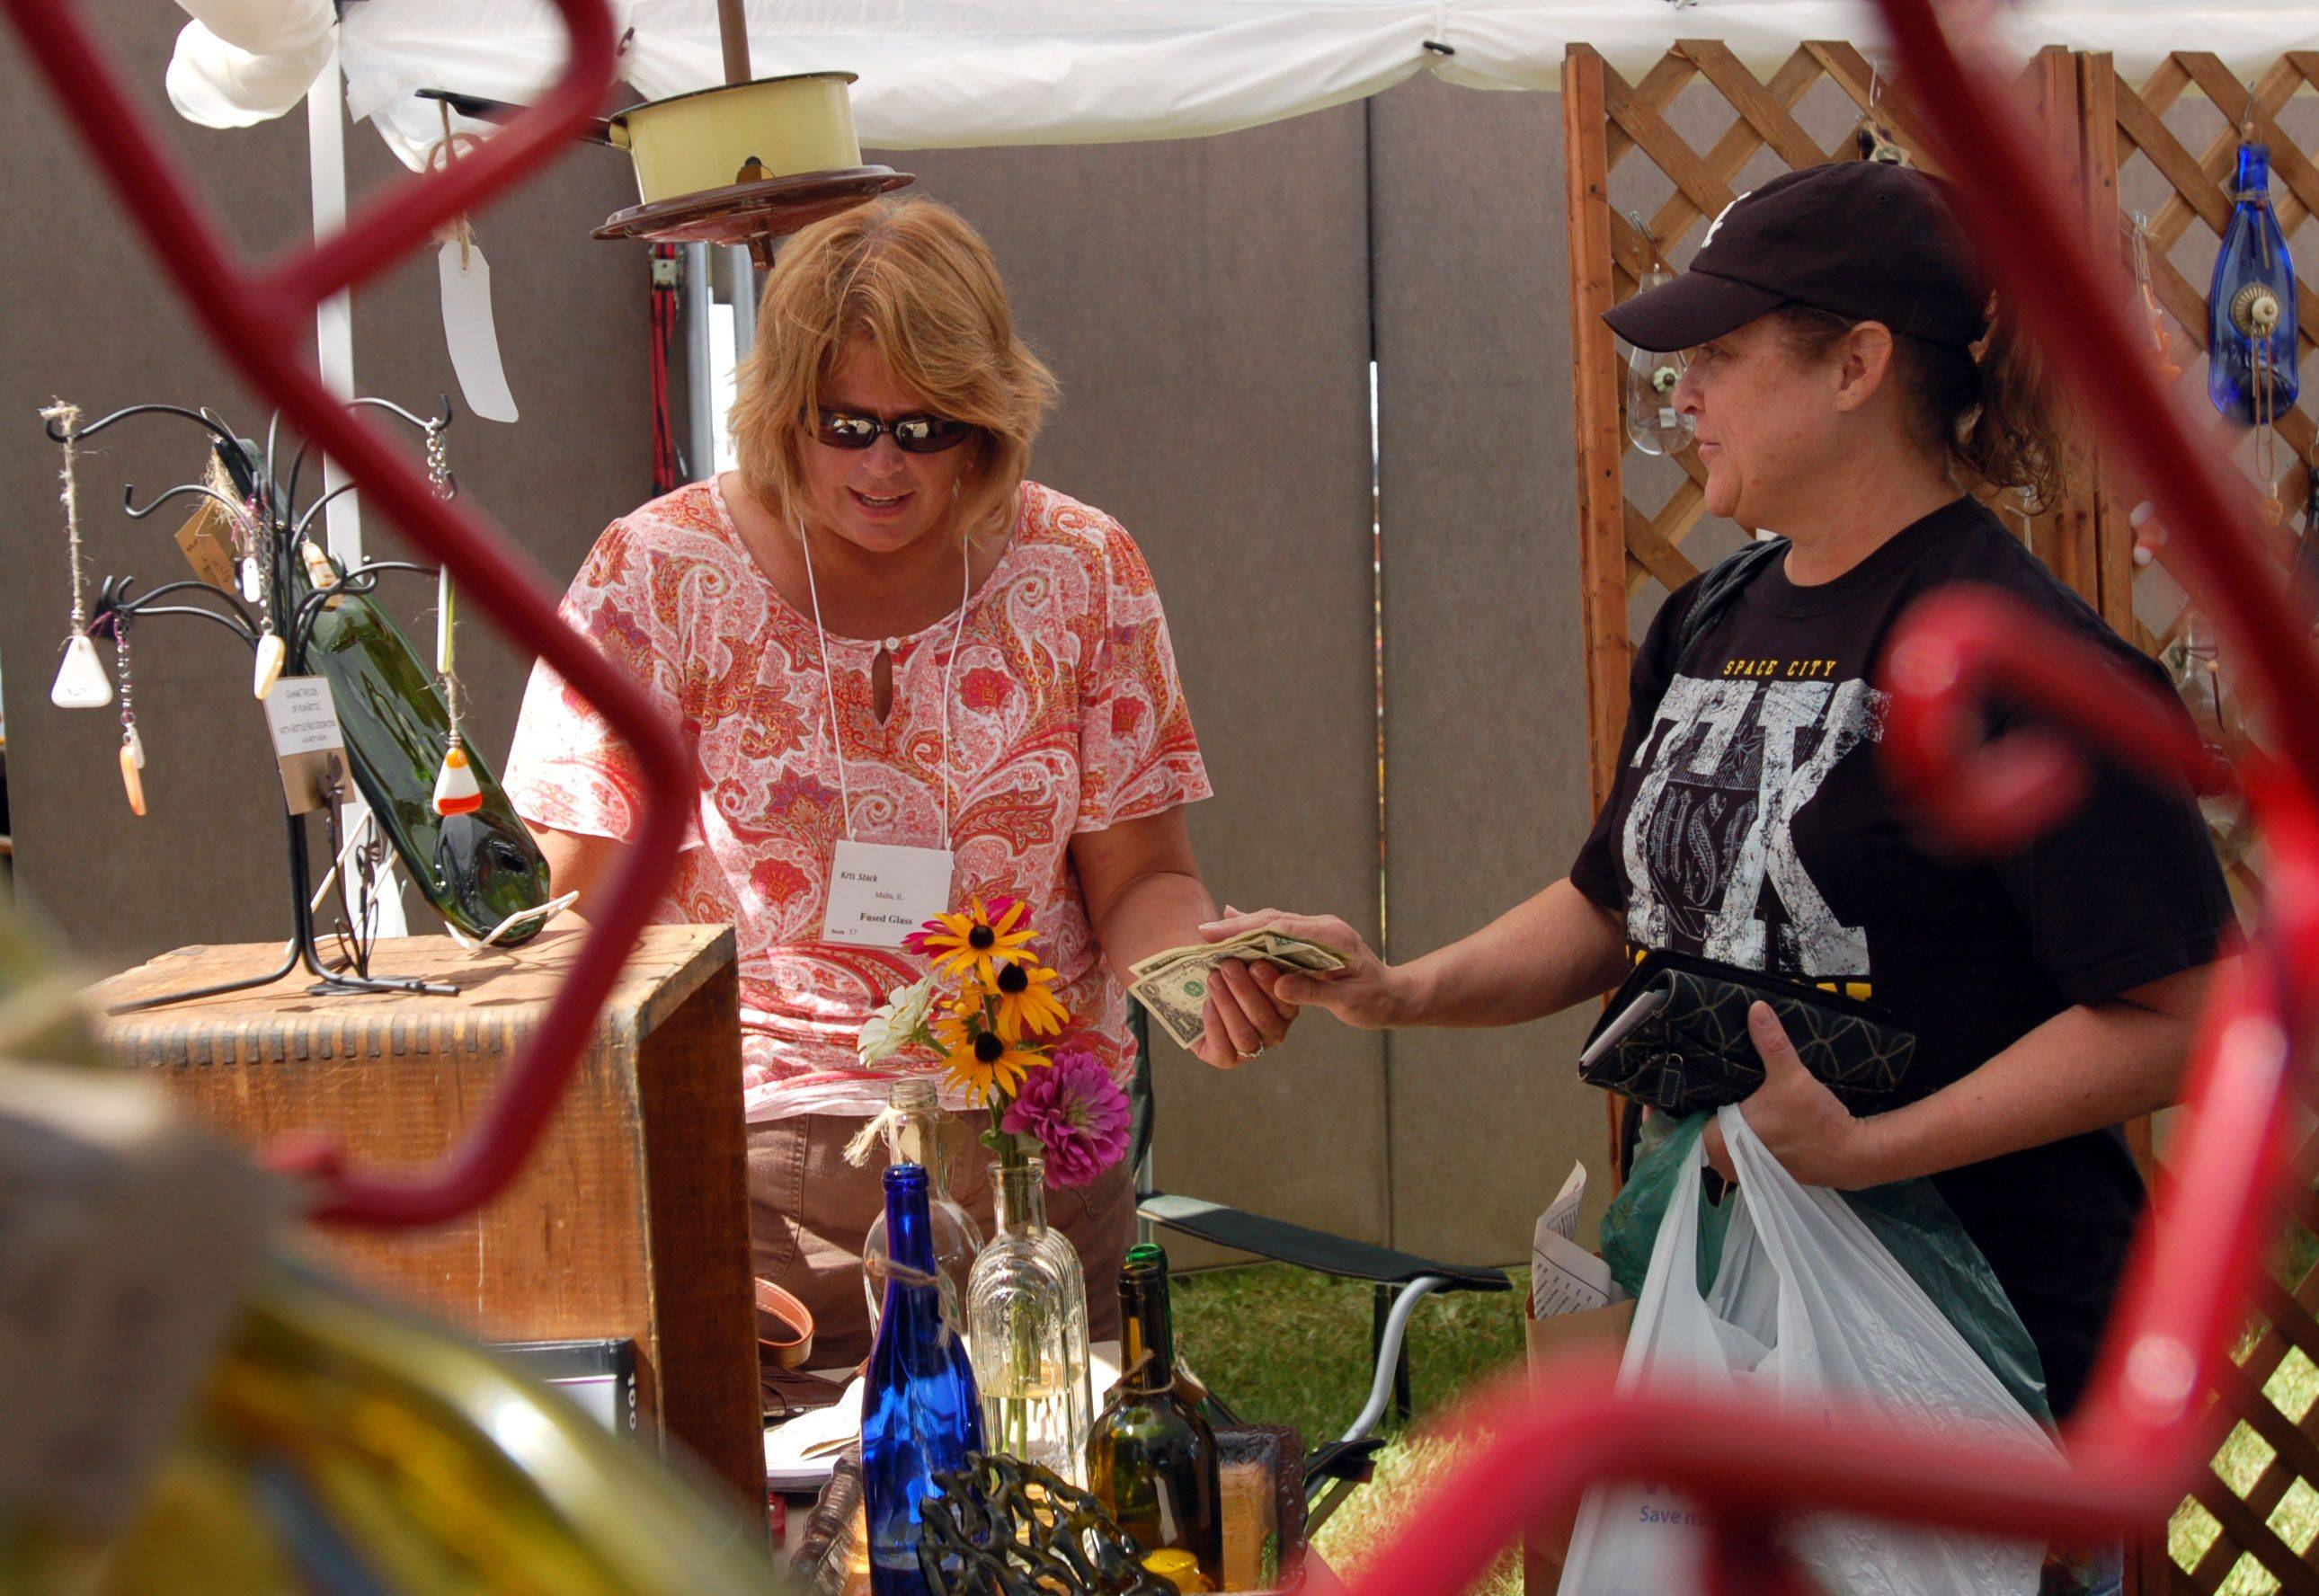 Kris Stark of Malta, left, sold one of her fused glass pieces to Paula Barden of Huntley, right, during the Huntley Artfest in downtown Huntley Sunday. Stark takes recycled glass objects and turns them into art.